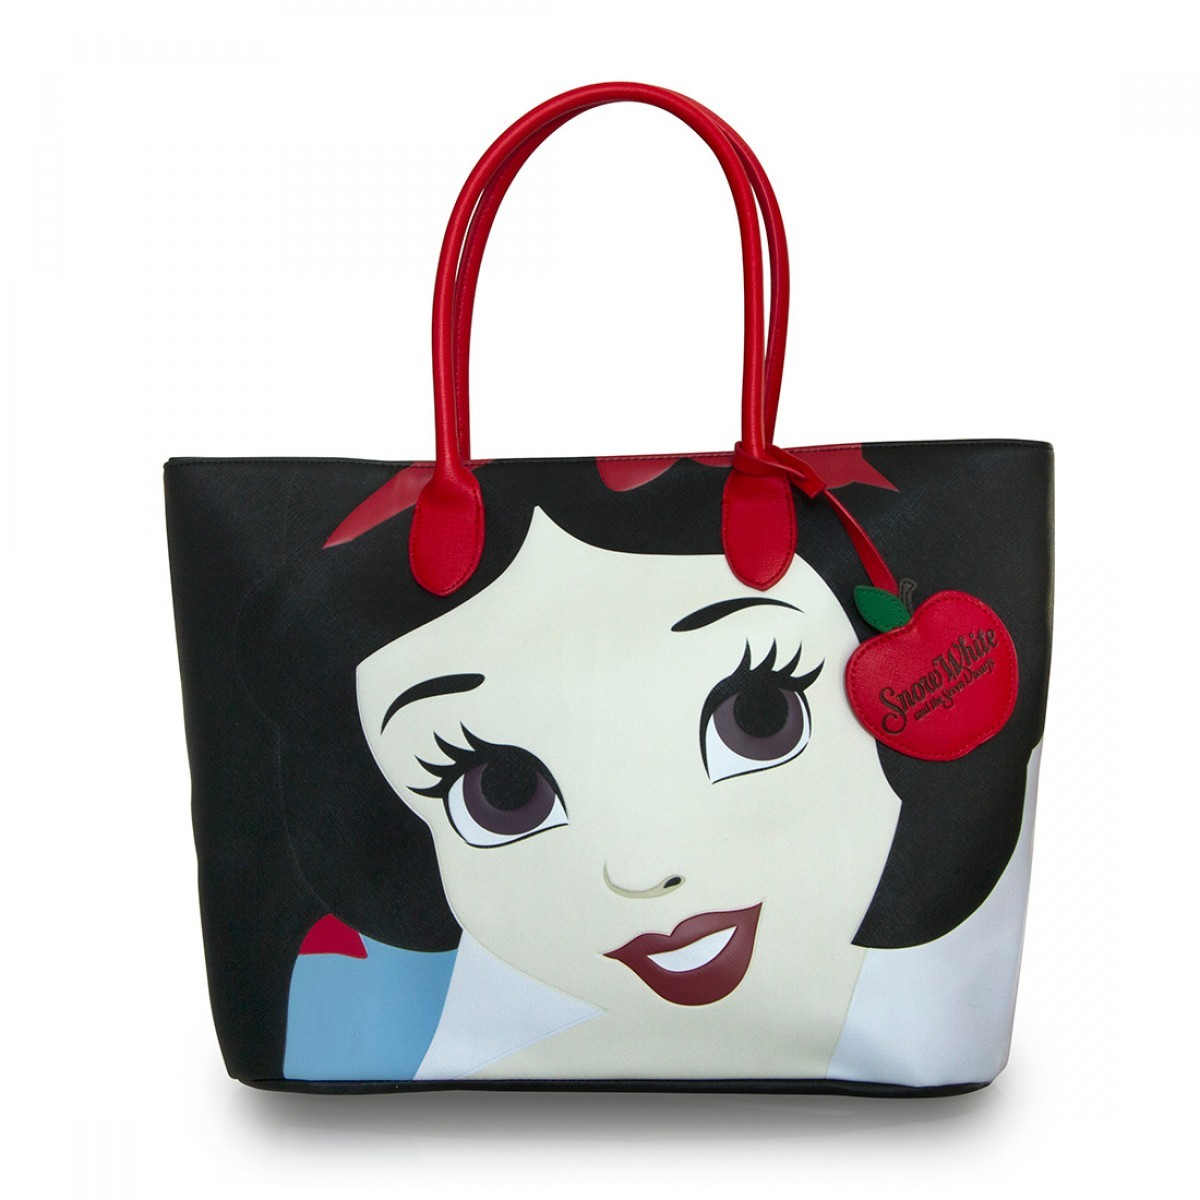 Loungefly Disney Snow White Face Tote Bag image